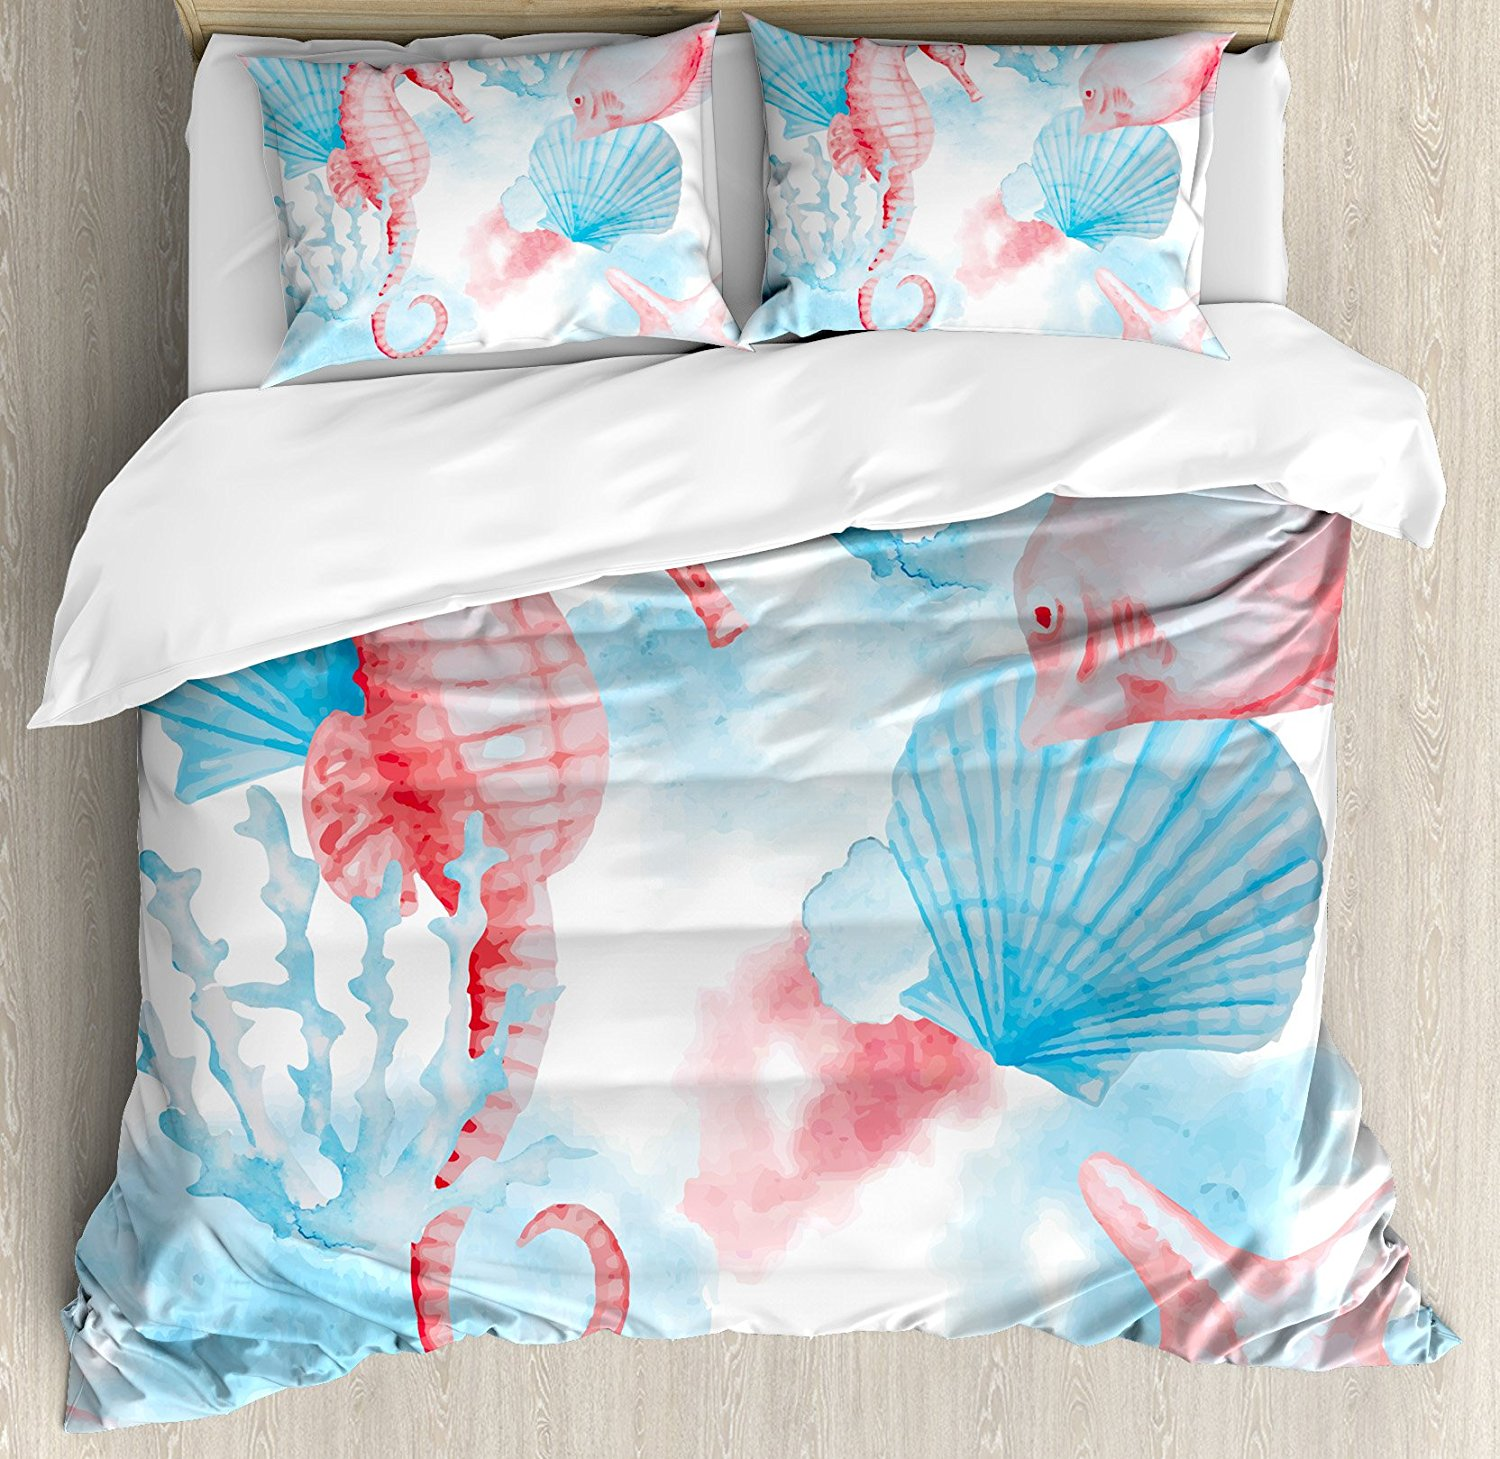 Ambesonne Nautical Decor Duvet Cover Set King Size, Sea Shells, Sea Horse, Corals, Fish Sandy Beach Exotic Stylized Water Color Effect, Decorative 3 Piece Bedding Set with 2 Pillow Shams